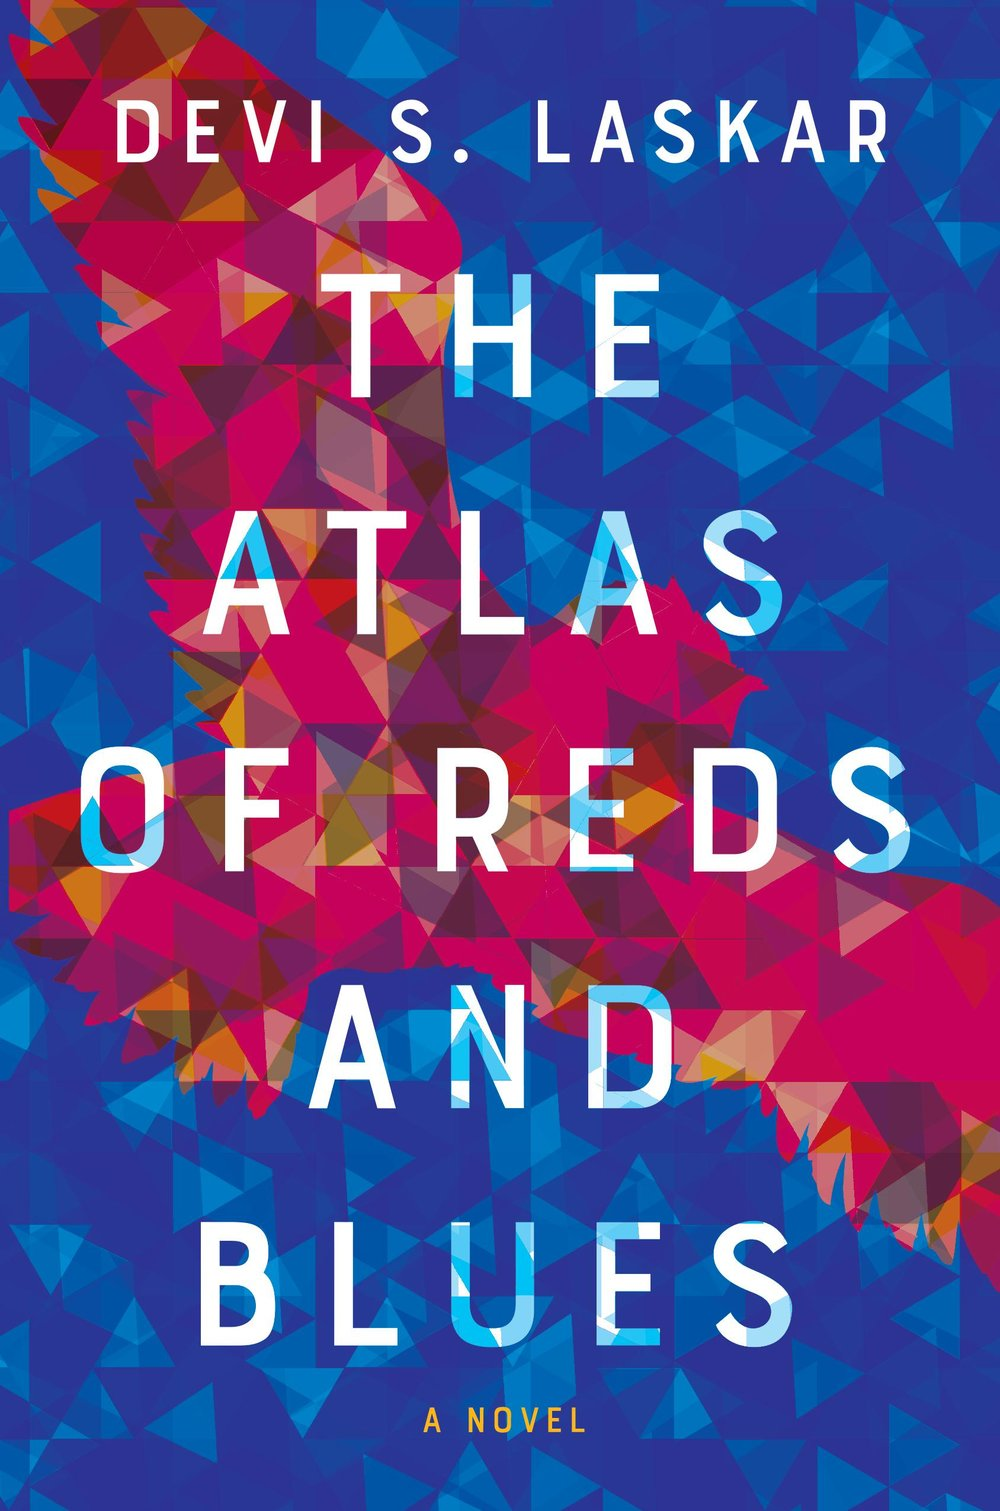 The-Atlas-of-Reds-and-Blues-for-author.jpg